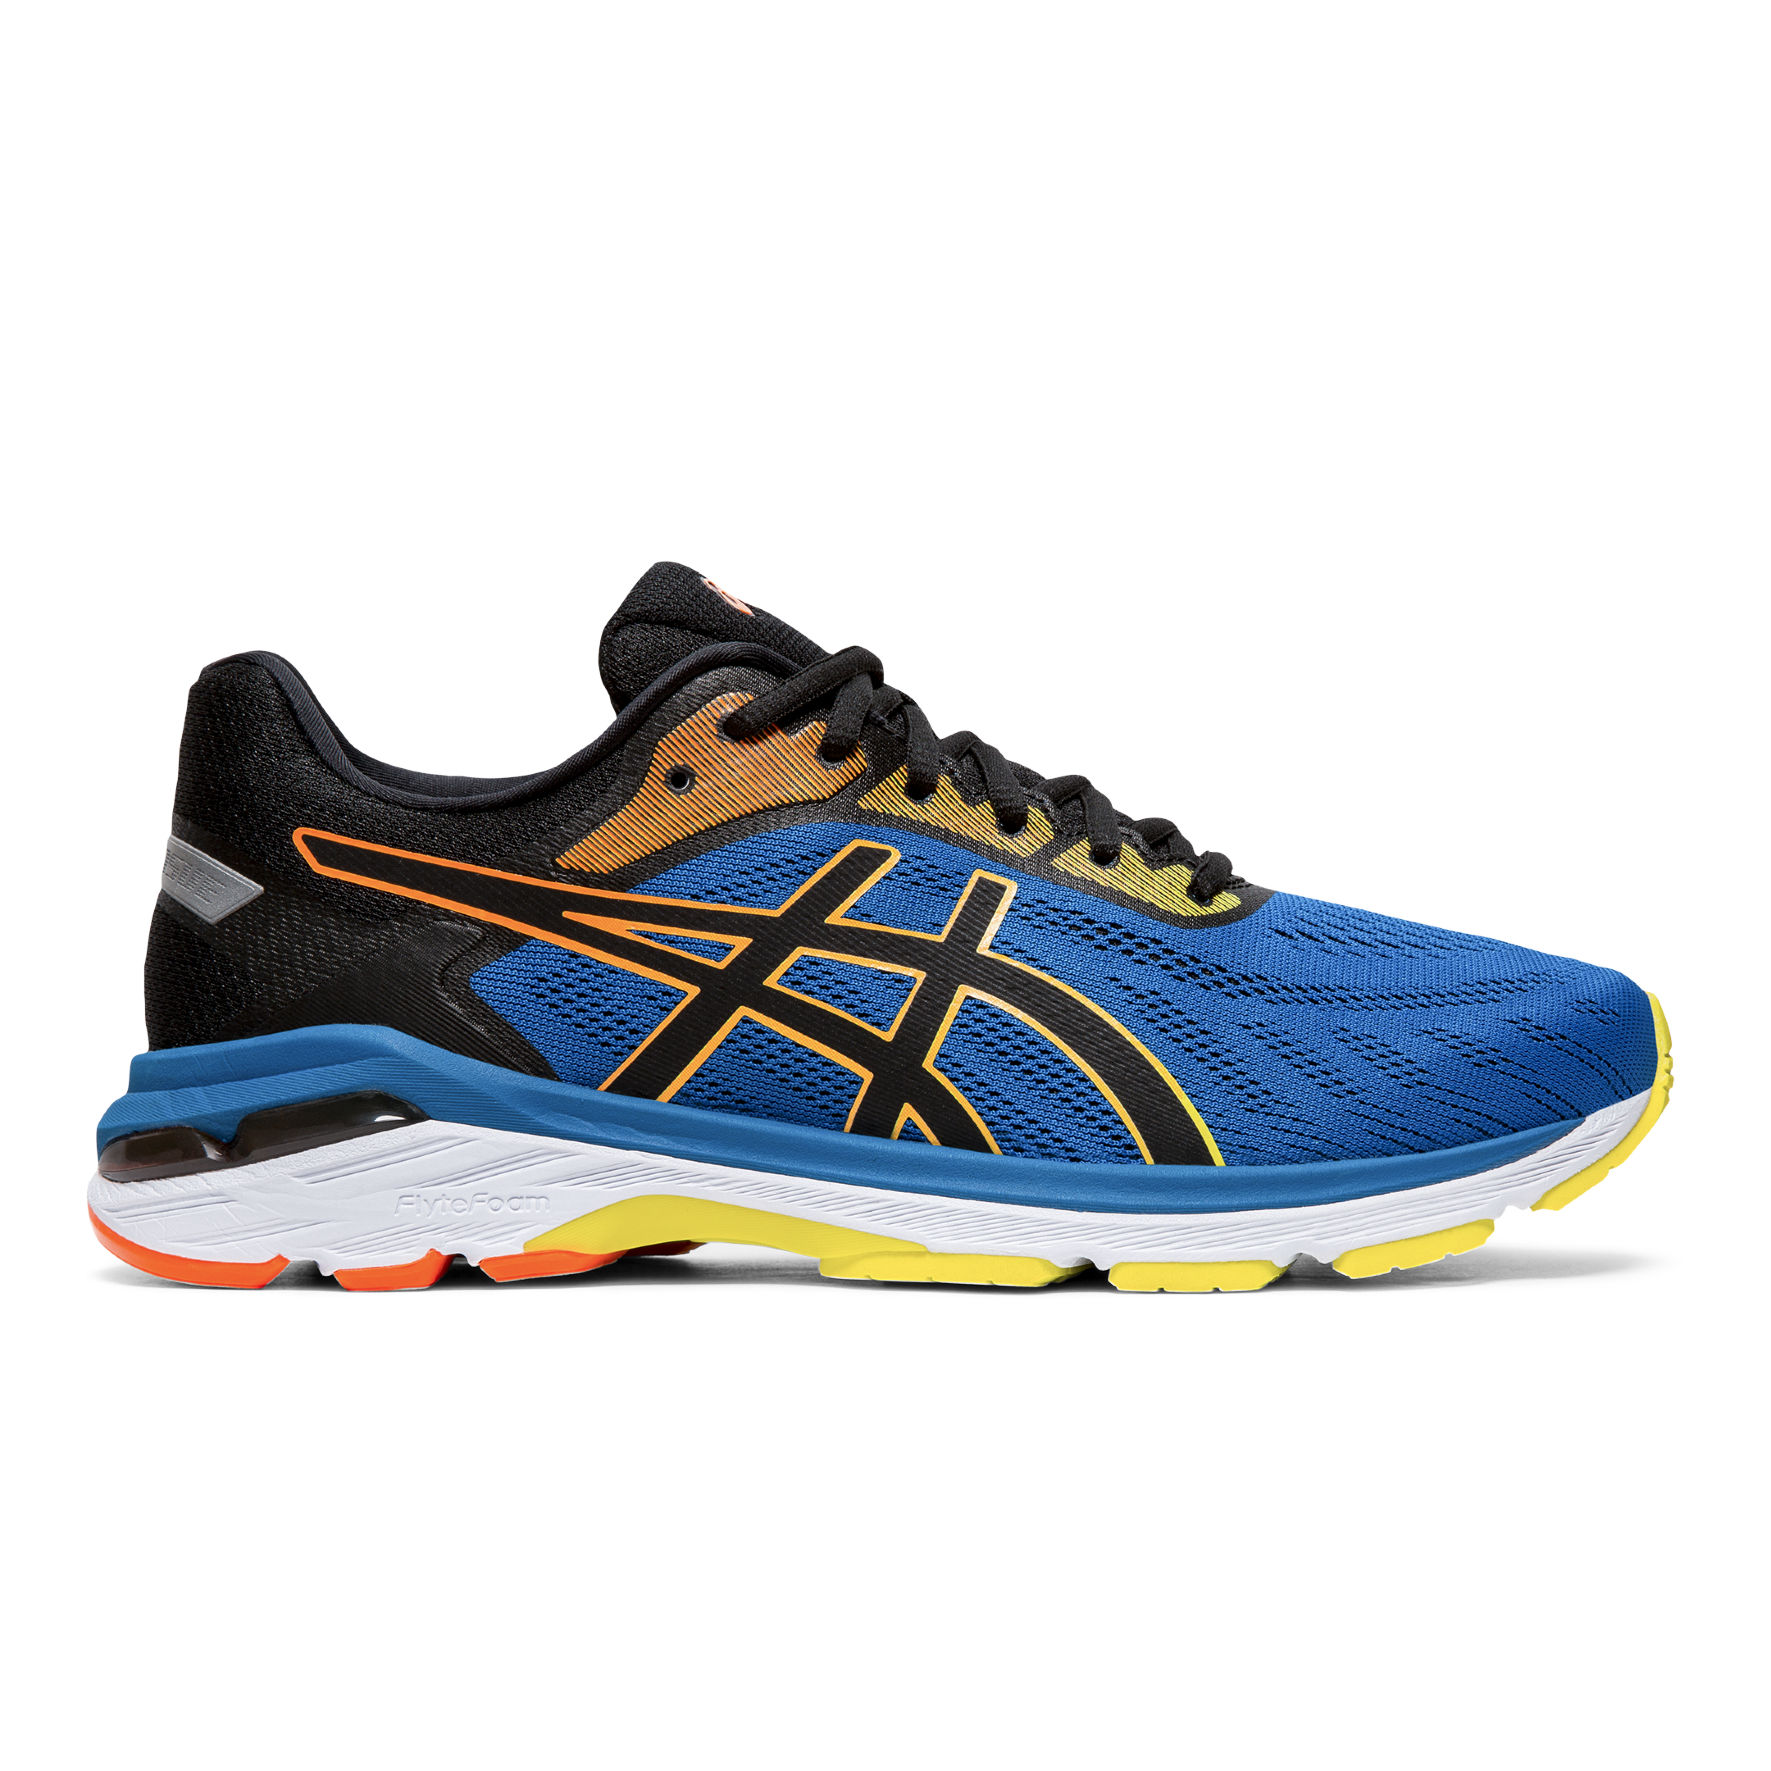 Asics Gel Pursue 5 in Blau